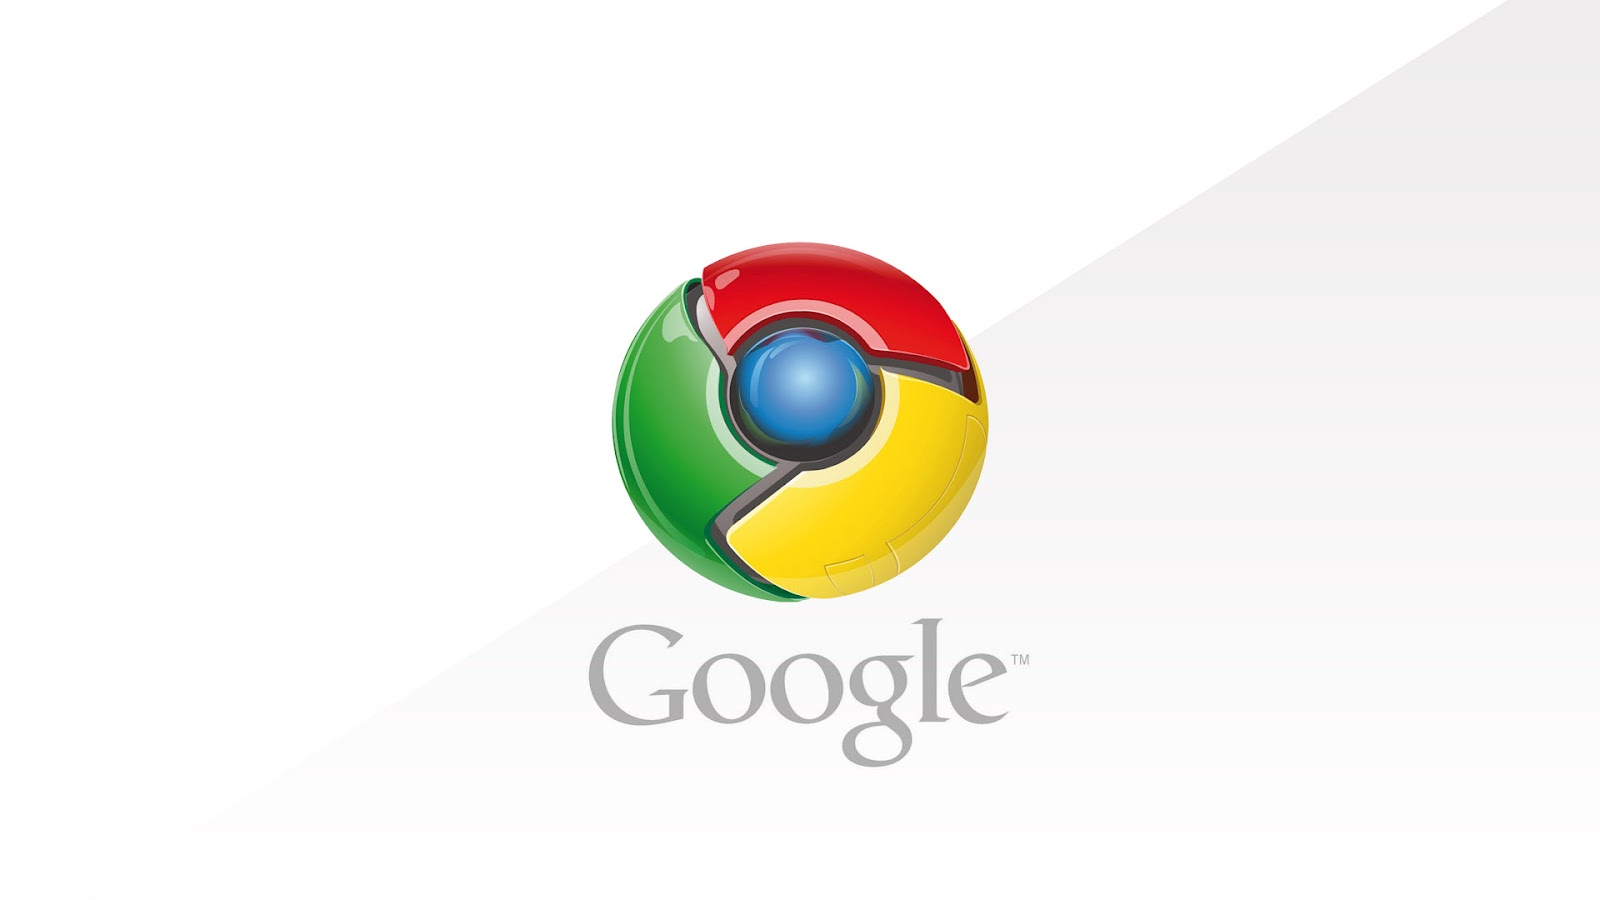 Download Free Software: Google Chrome 18.0.1025.151 Latest ... - photo#22